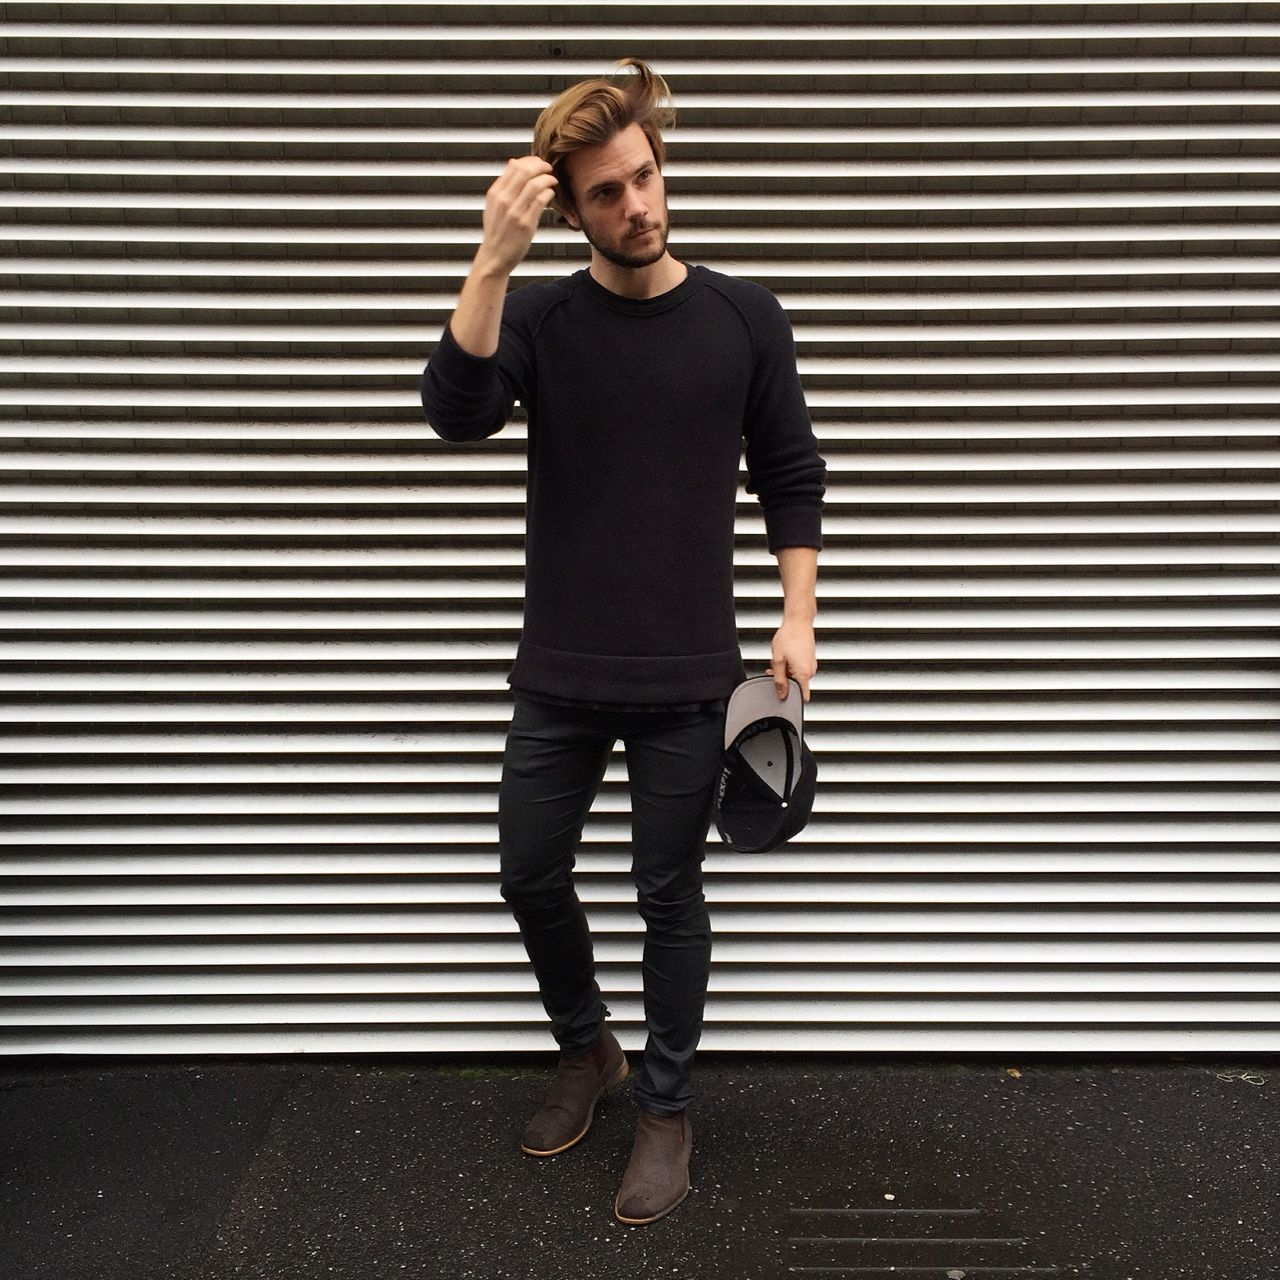 The menstyle blog • LOOKBOOK. Simple and effective stylish look ... 9062163cea76e